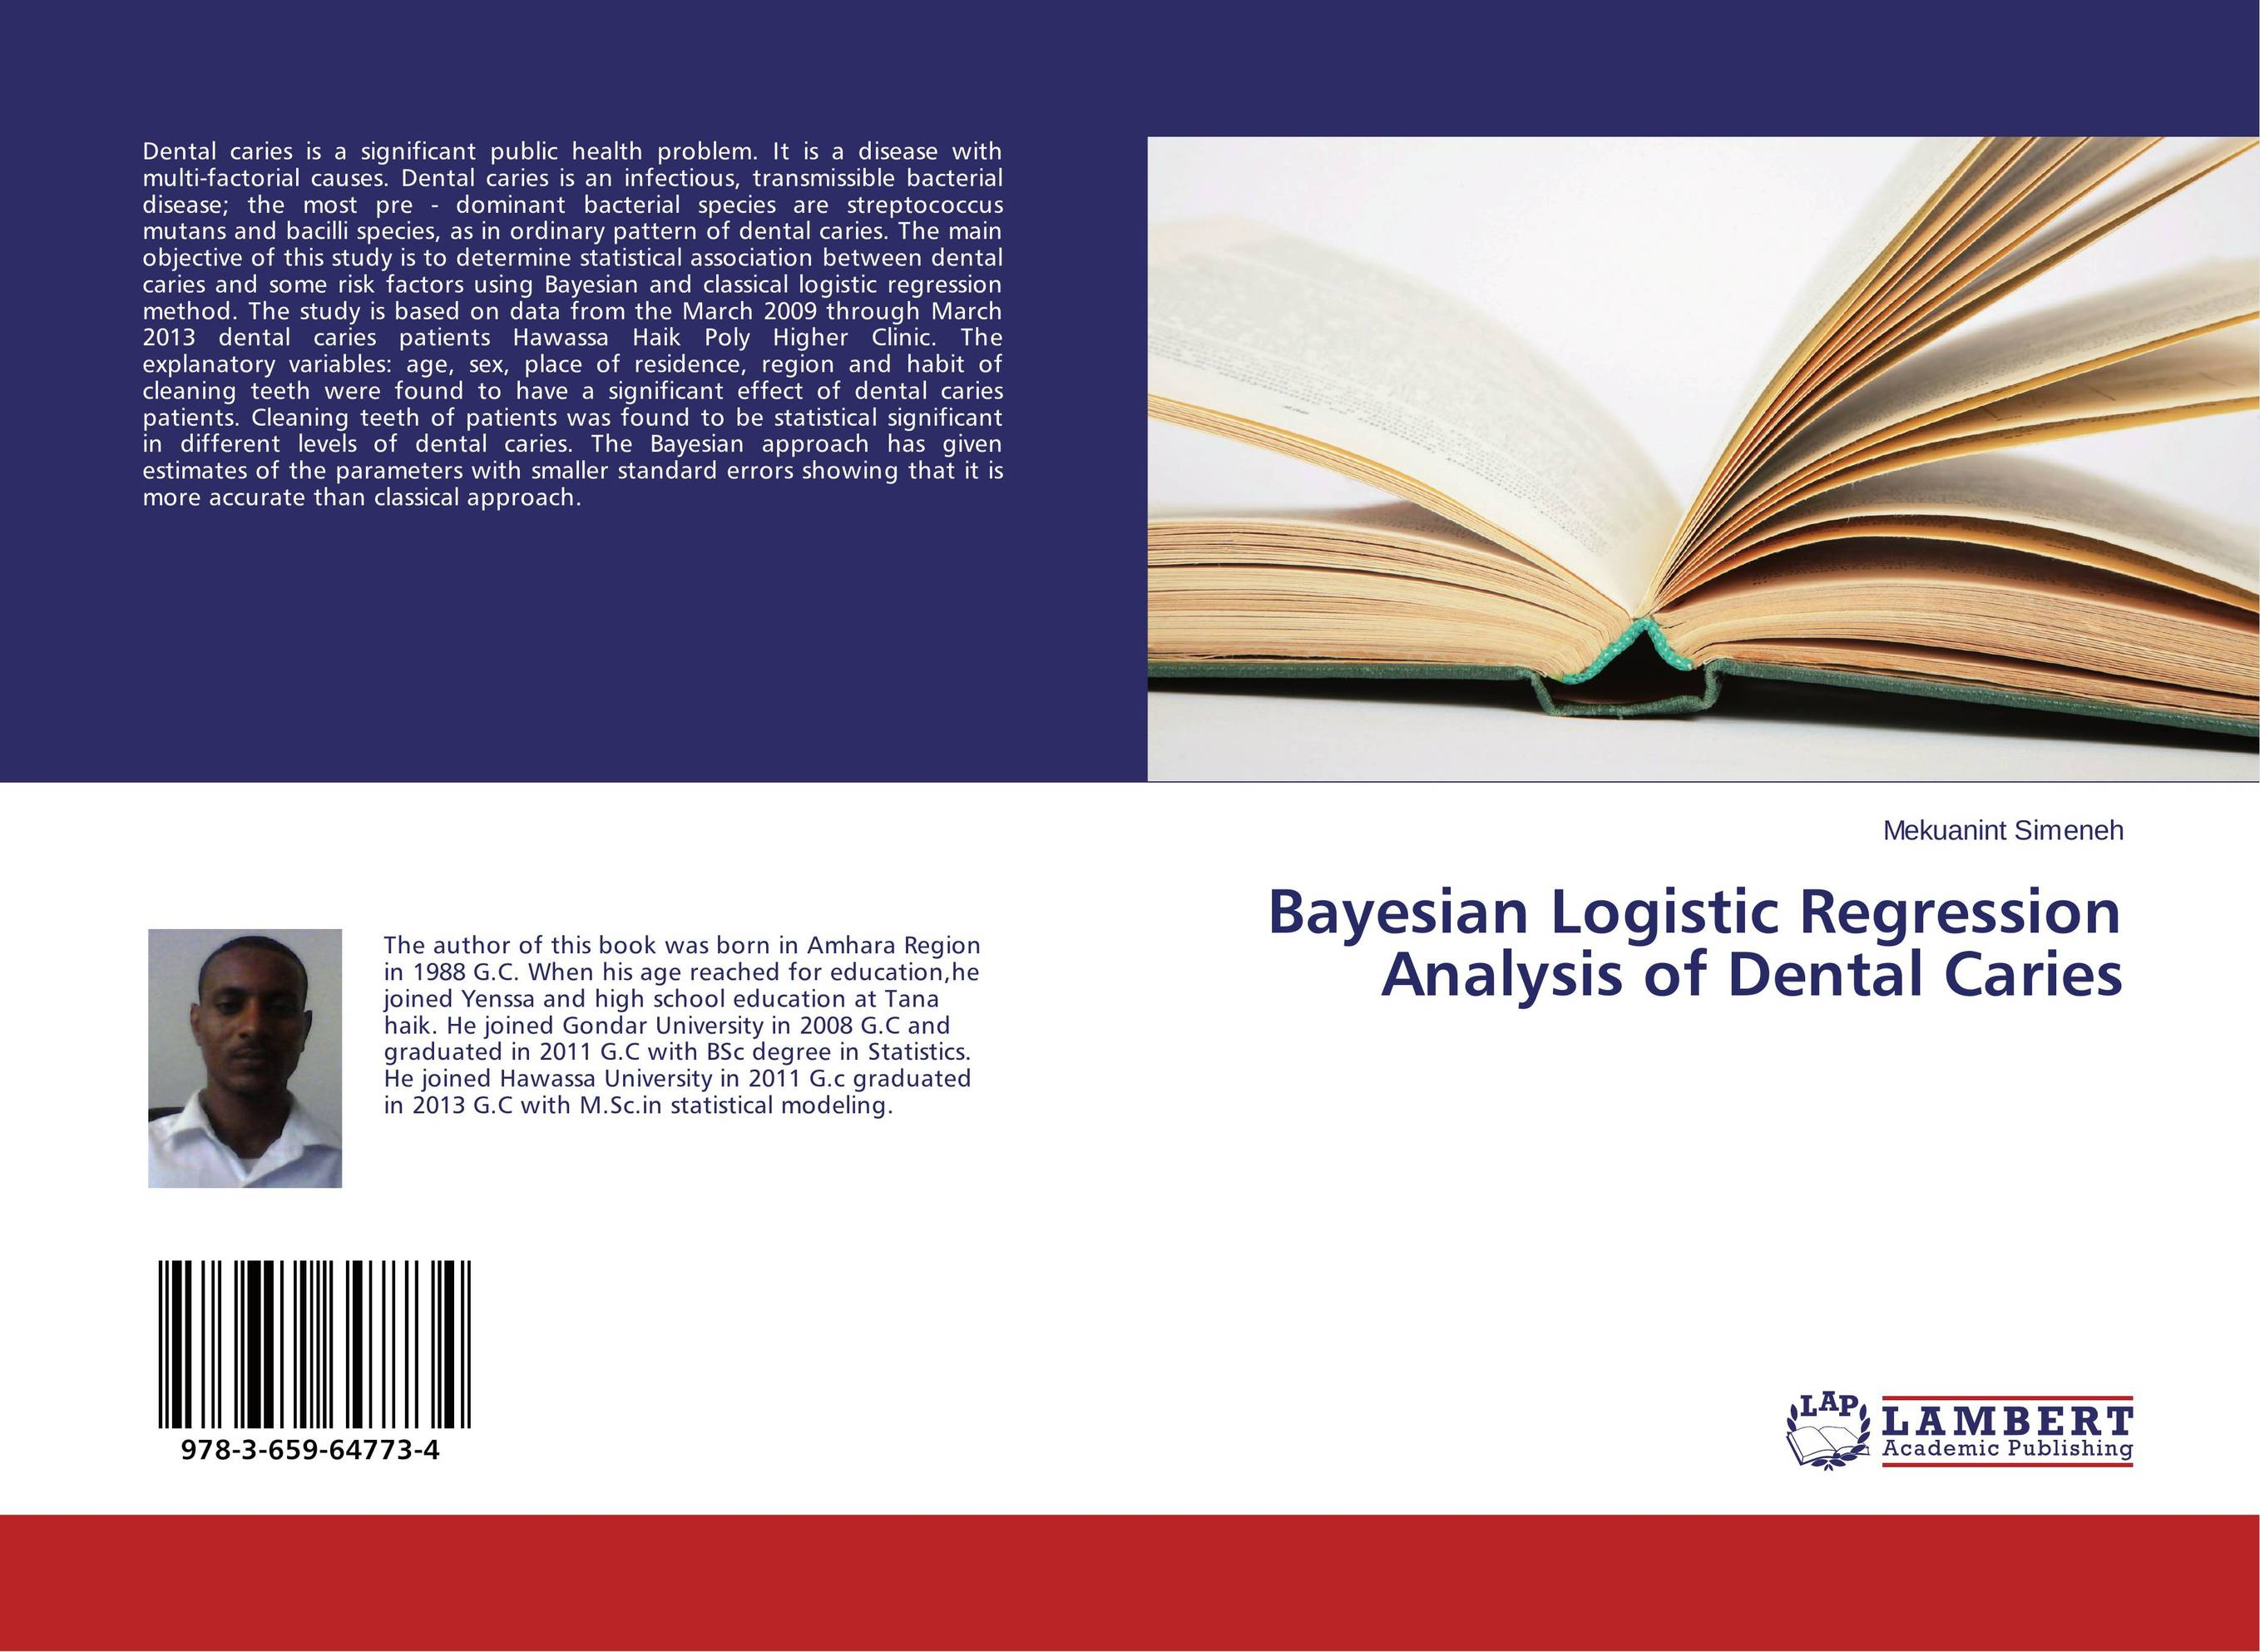 Bayesian Logistic Regression Analysis of Dental Caries logistic management